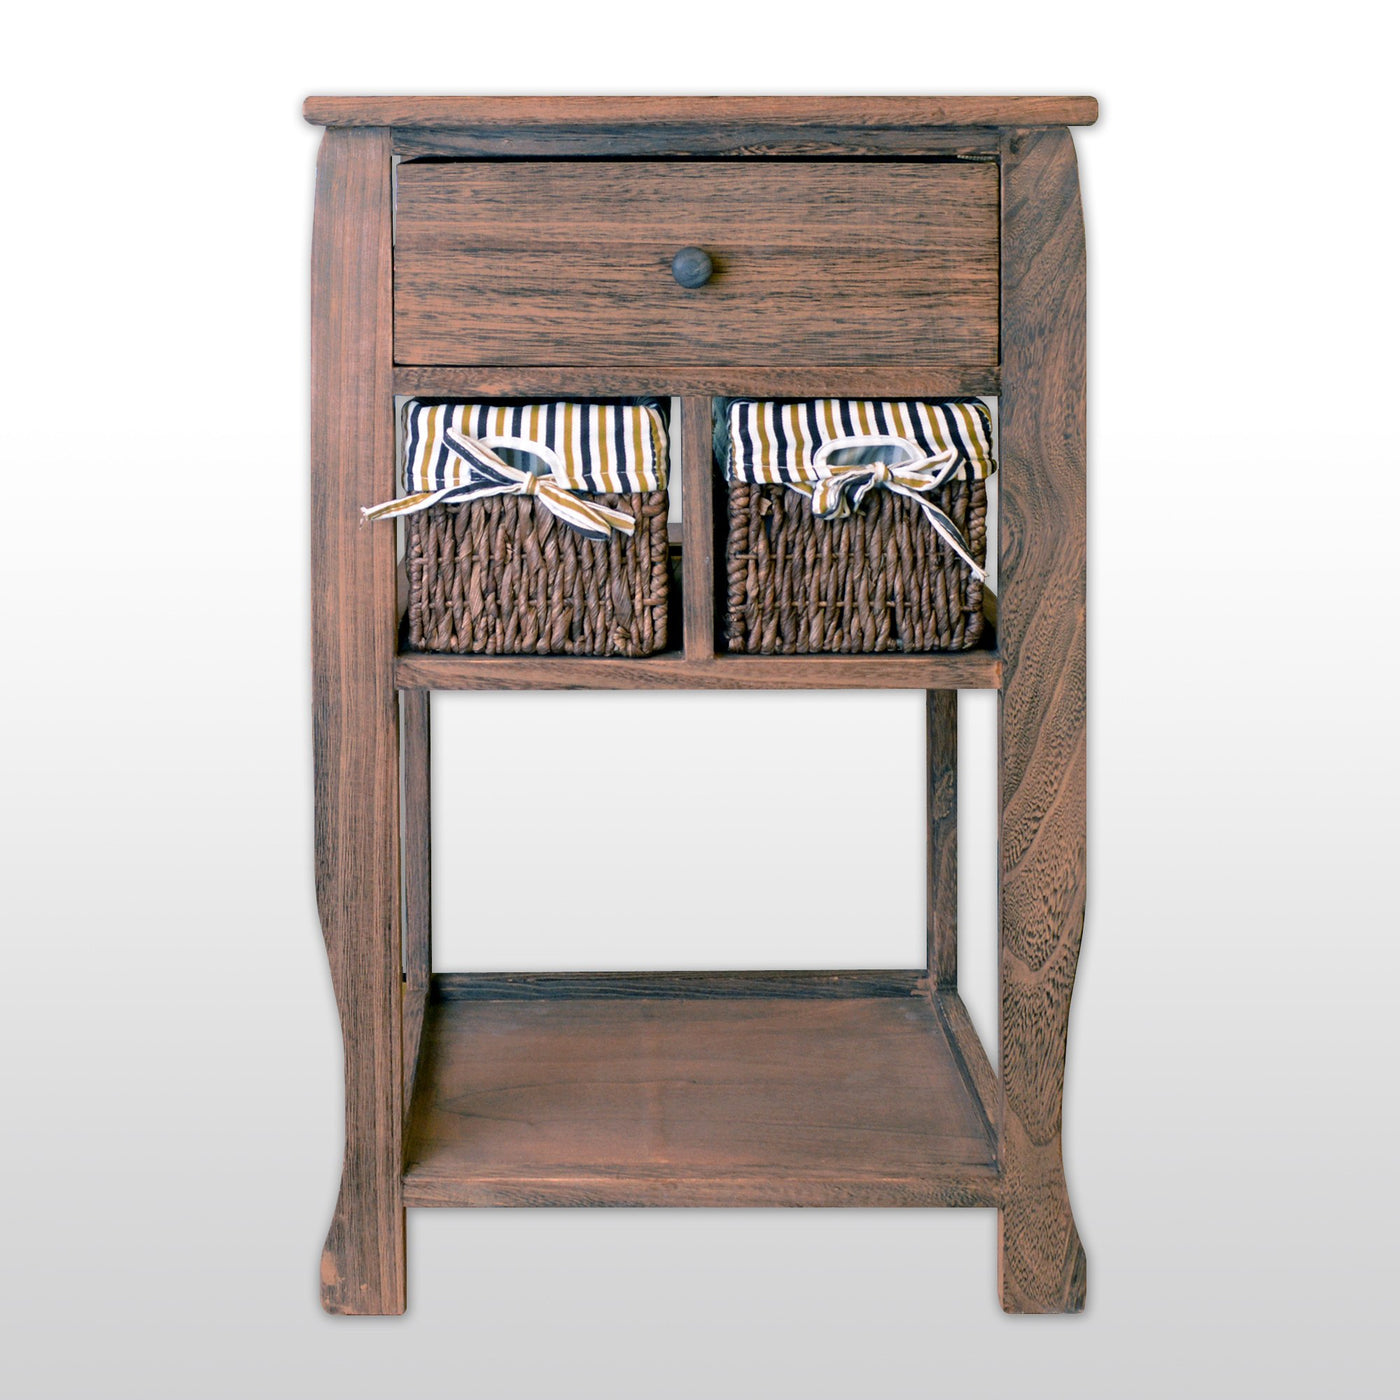 Wood Nightstand With 1 Drawer 2 Wicker Baskets 26 Tall In Antique Walnut Finish